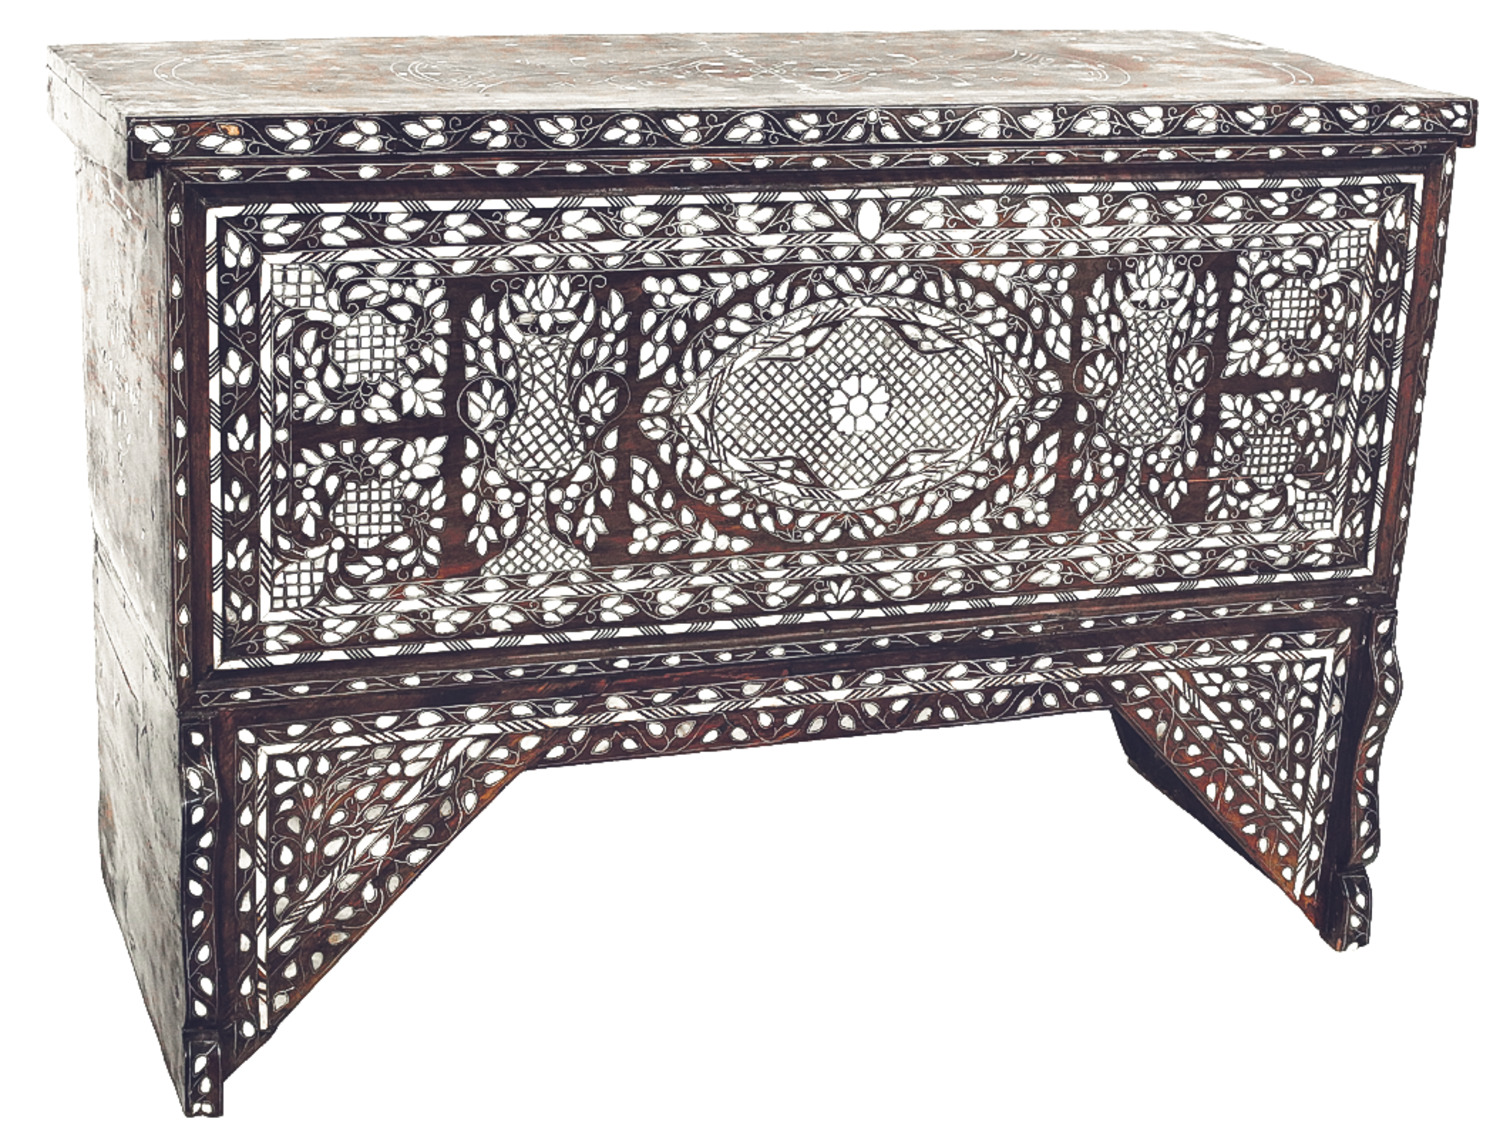 Inlaid Dresser, Mother-of-Pearl (City of Damascus)